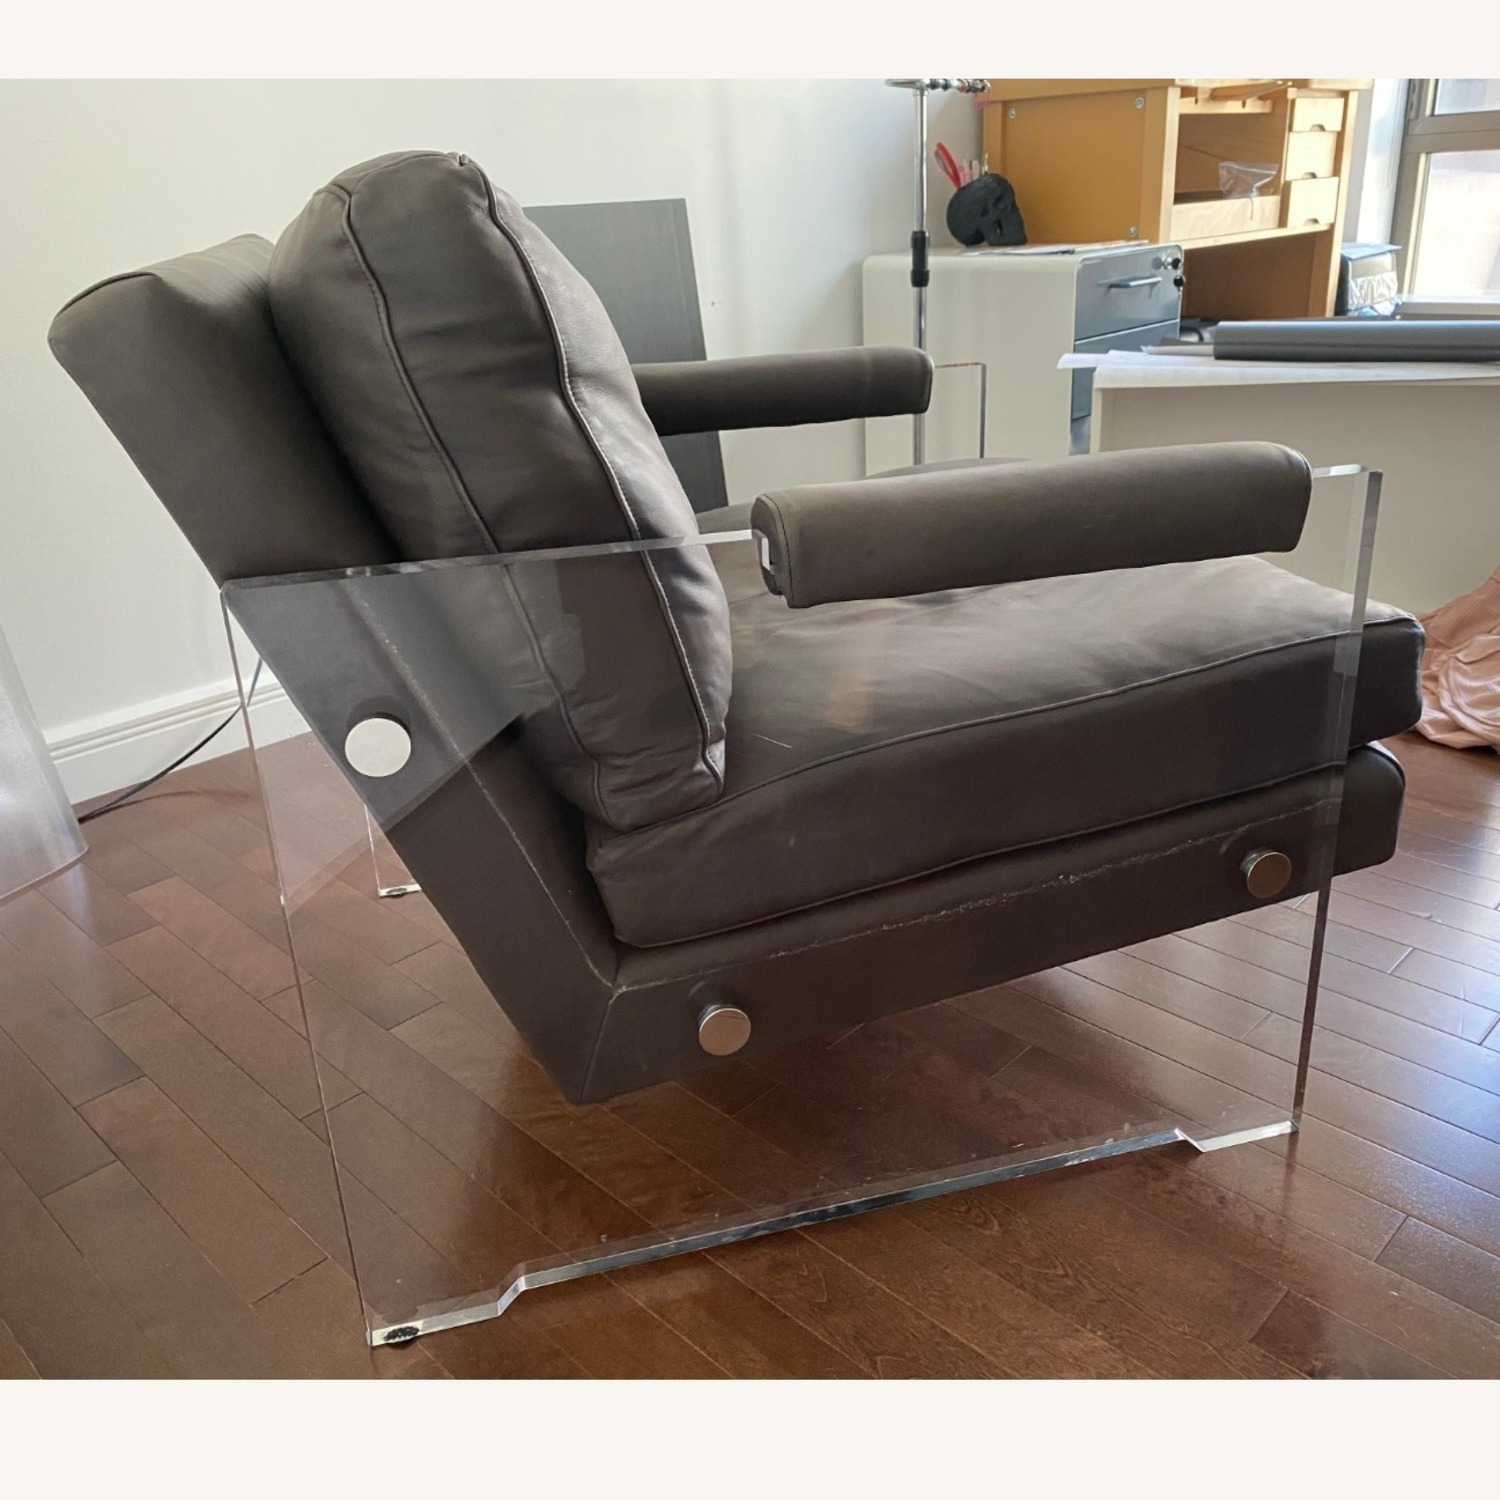 Restoration Hardware Leather Luca Chair - image-17